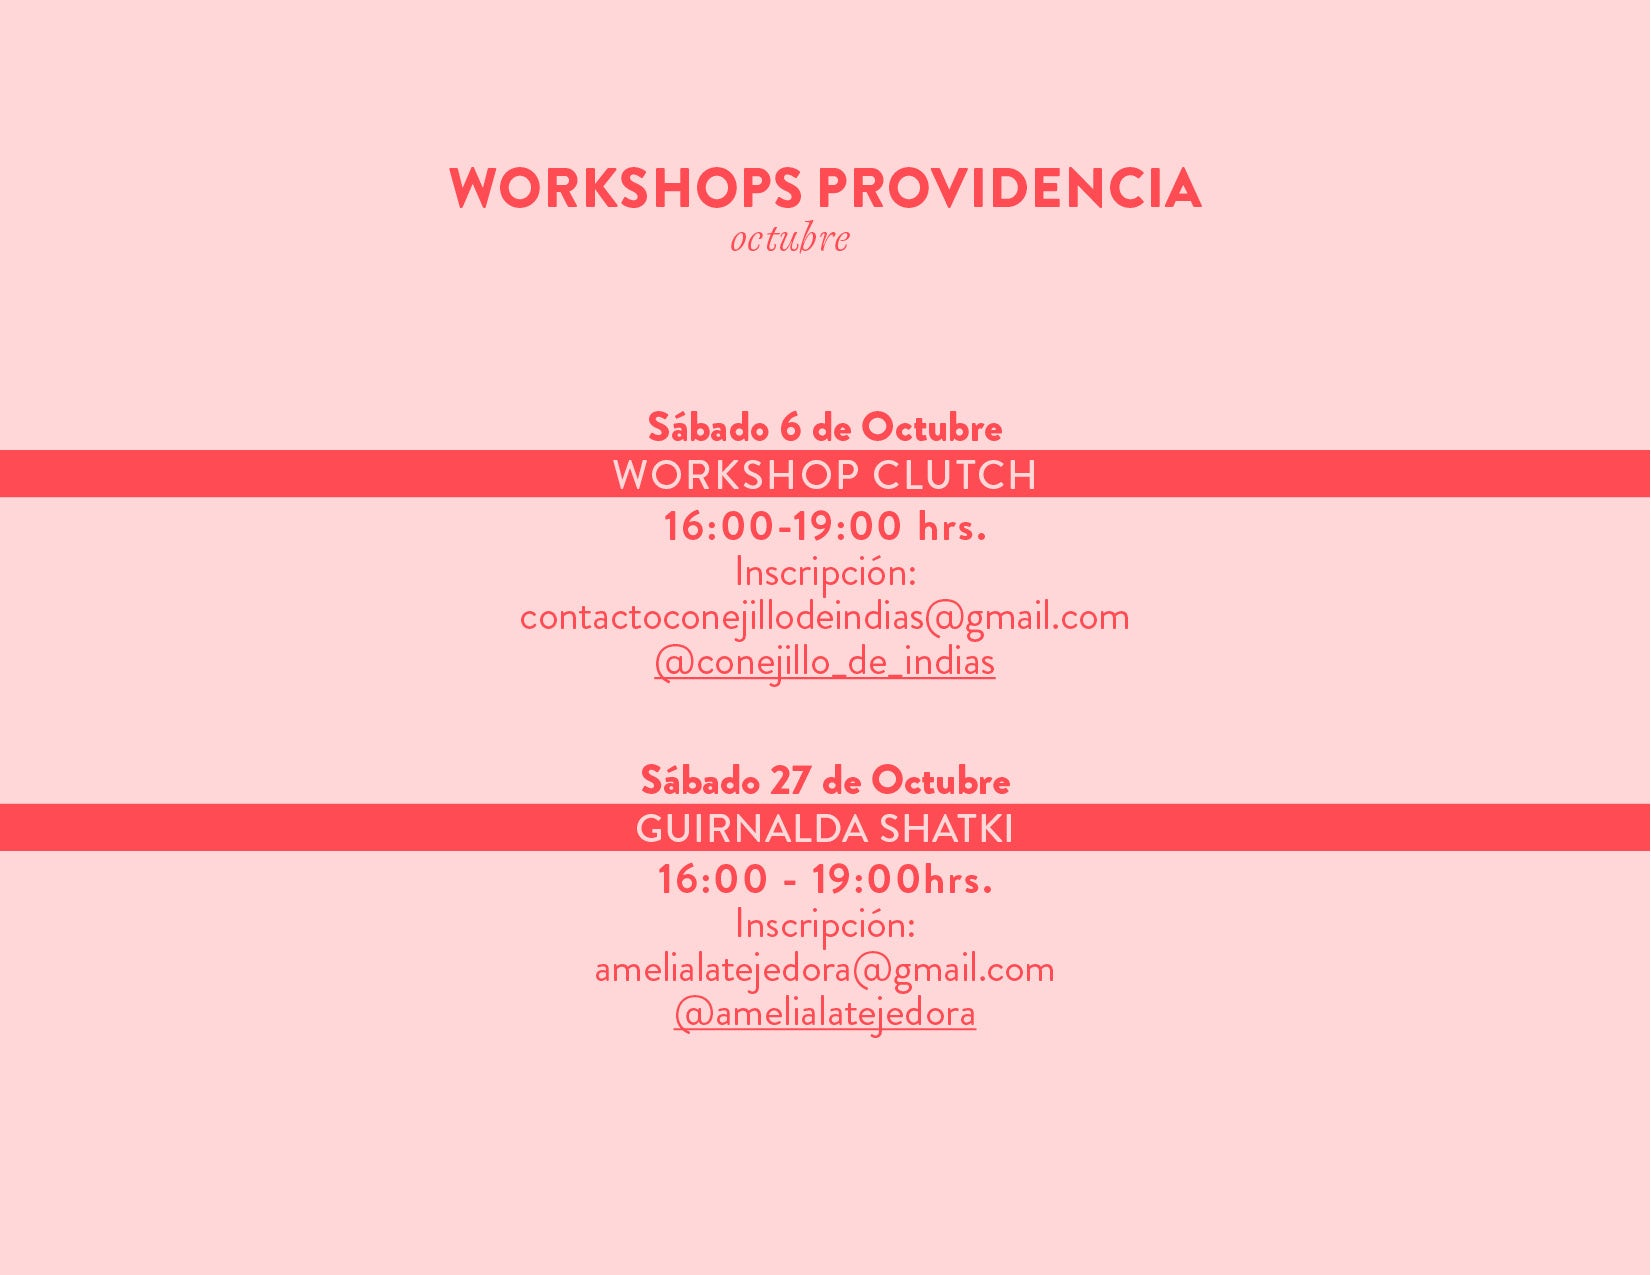 workshop providencia